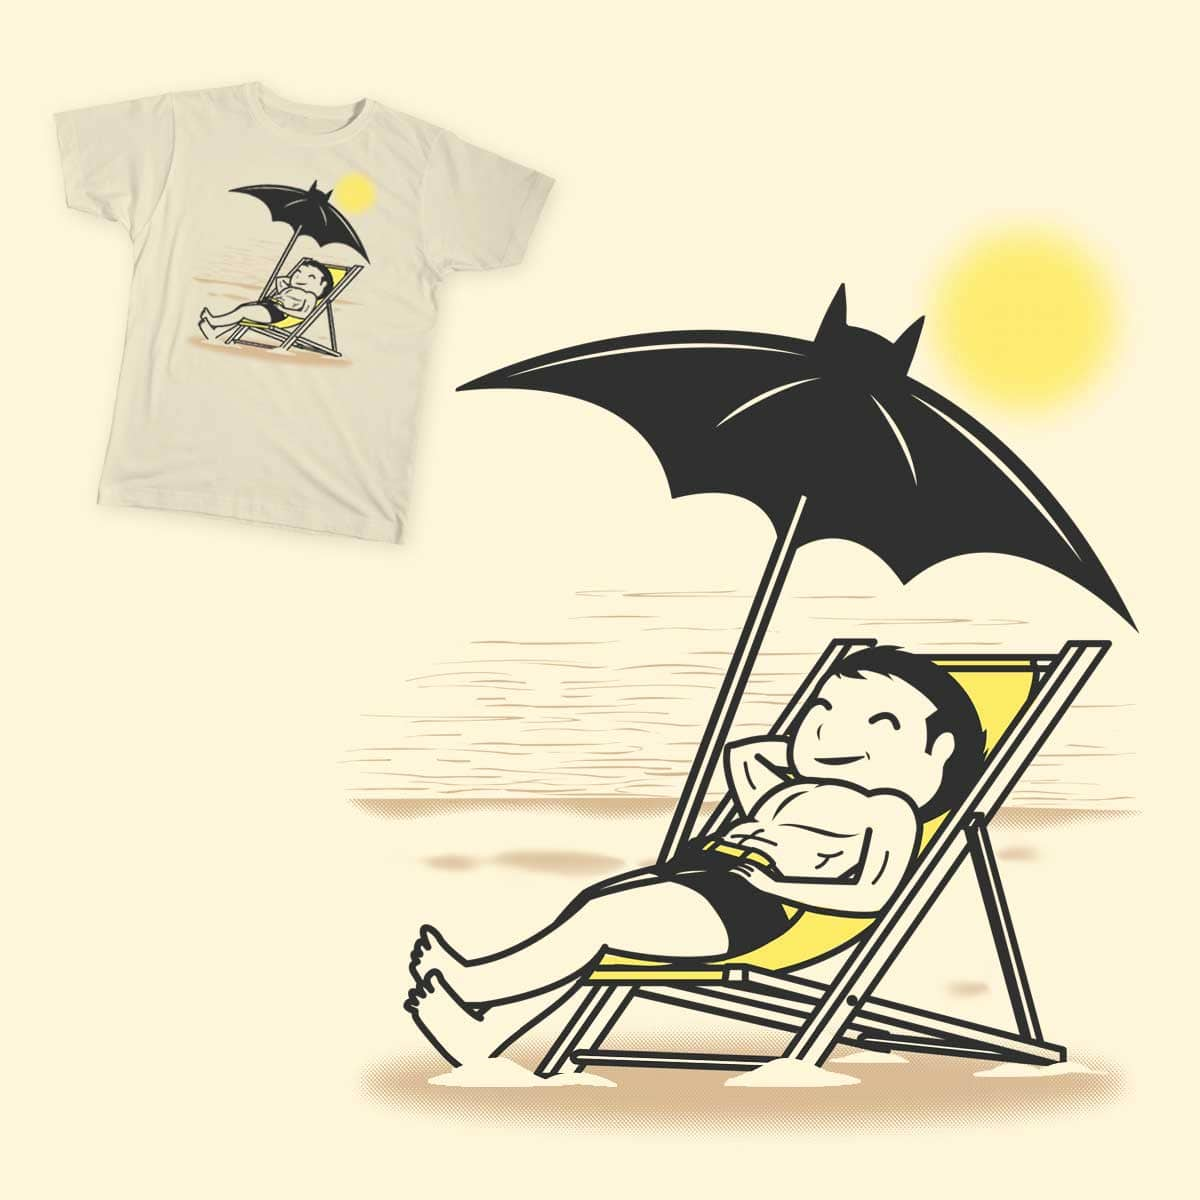 BATCATION by dnice25 on Threadless